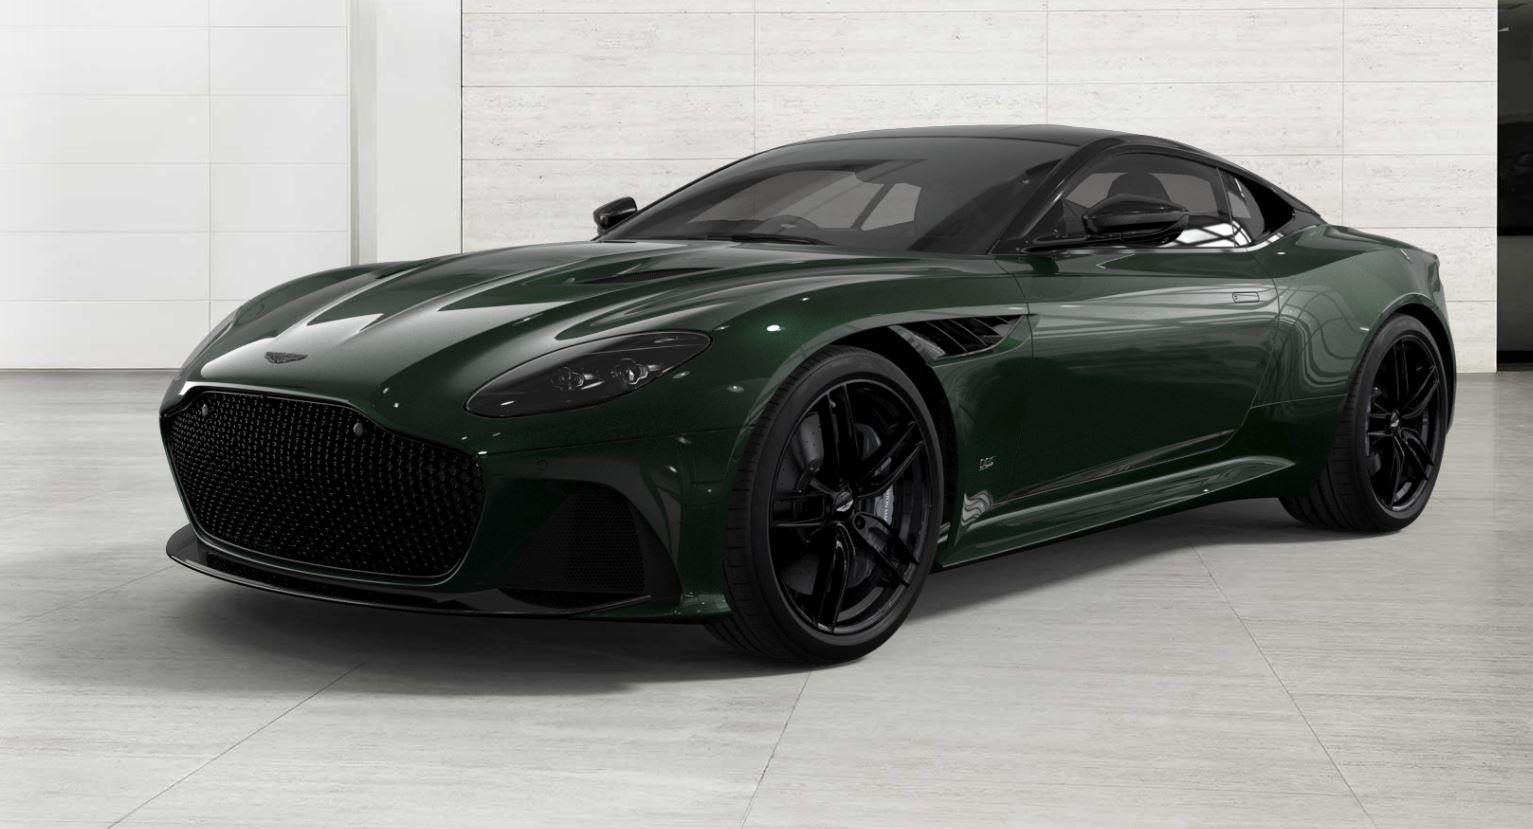 aston martin dbs superleggera configurator nu online topgear. Black Bedroom Furniture Sets. Home Design Ideas